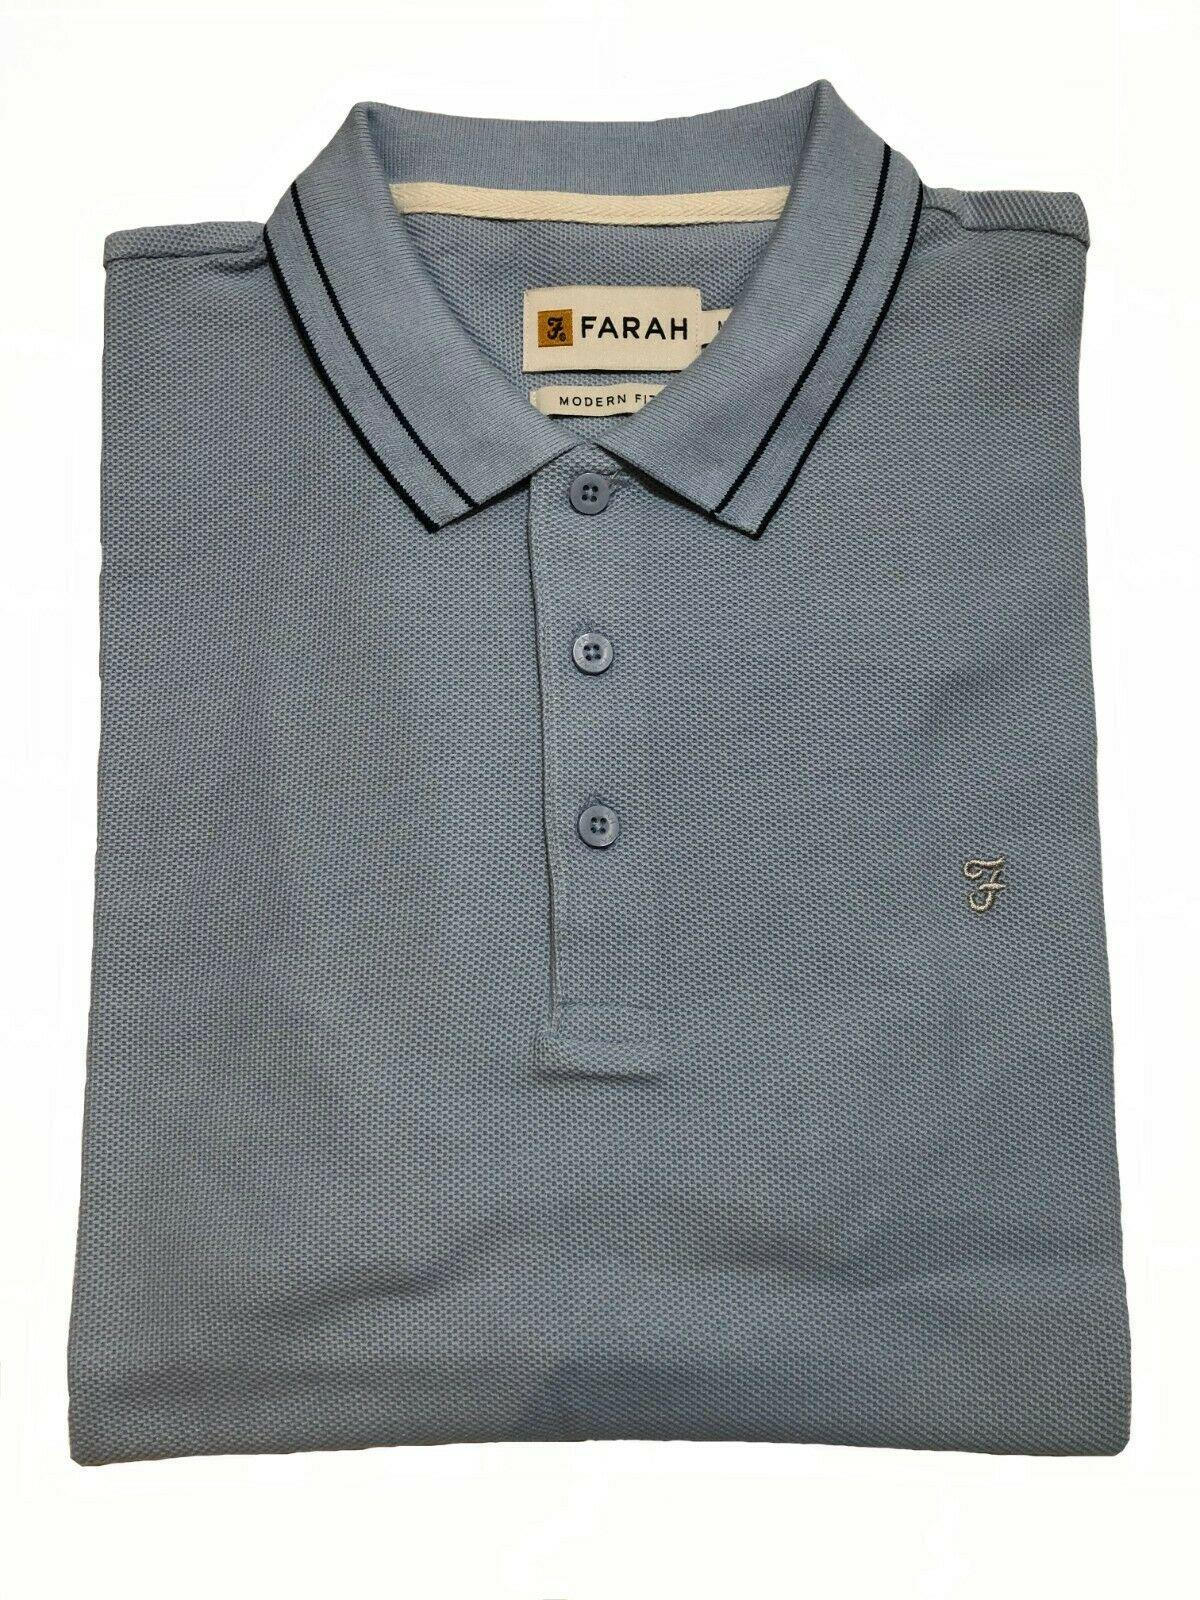 honeycomb short sleeve polo shirt (sky blue)